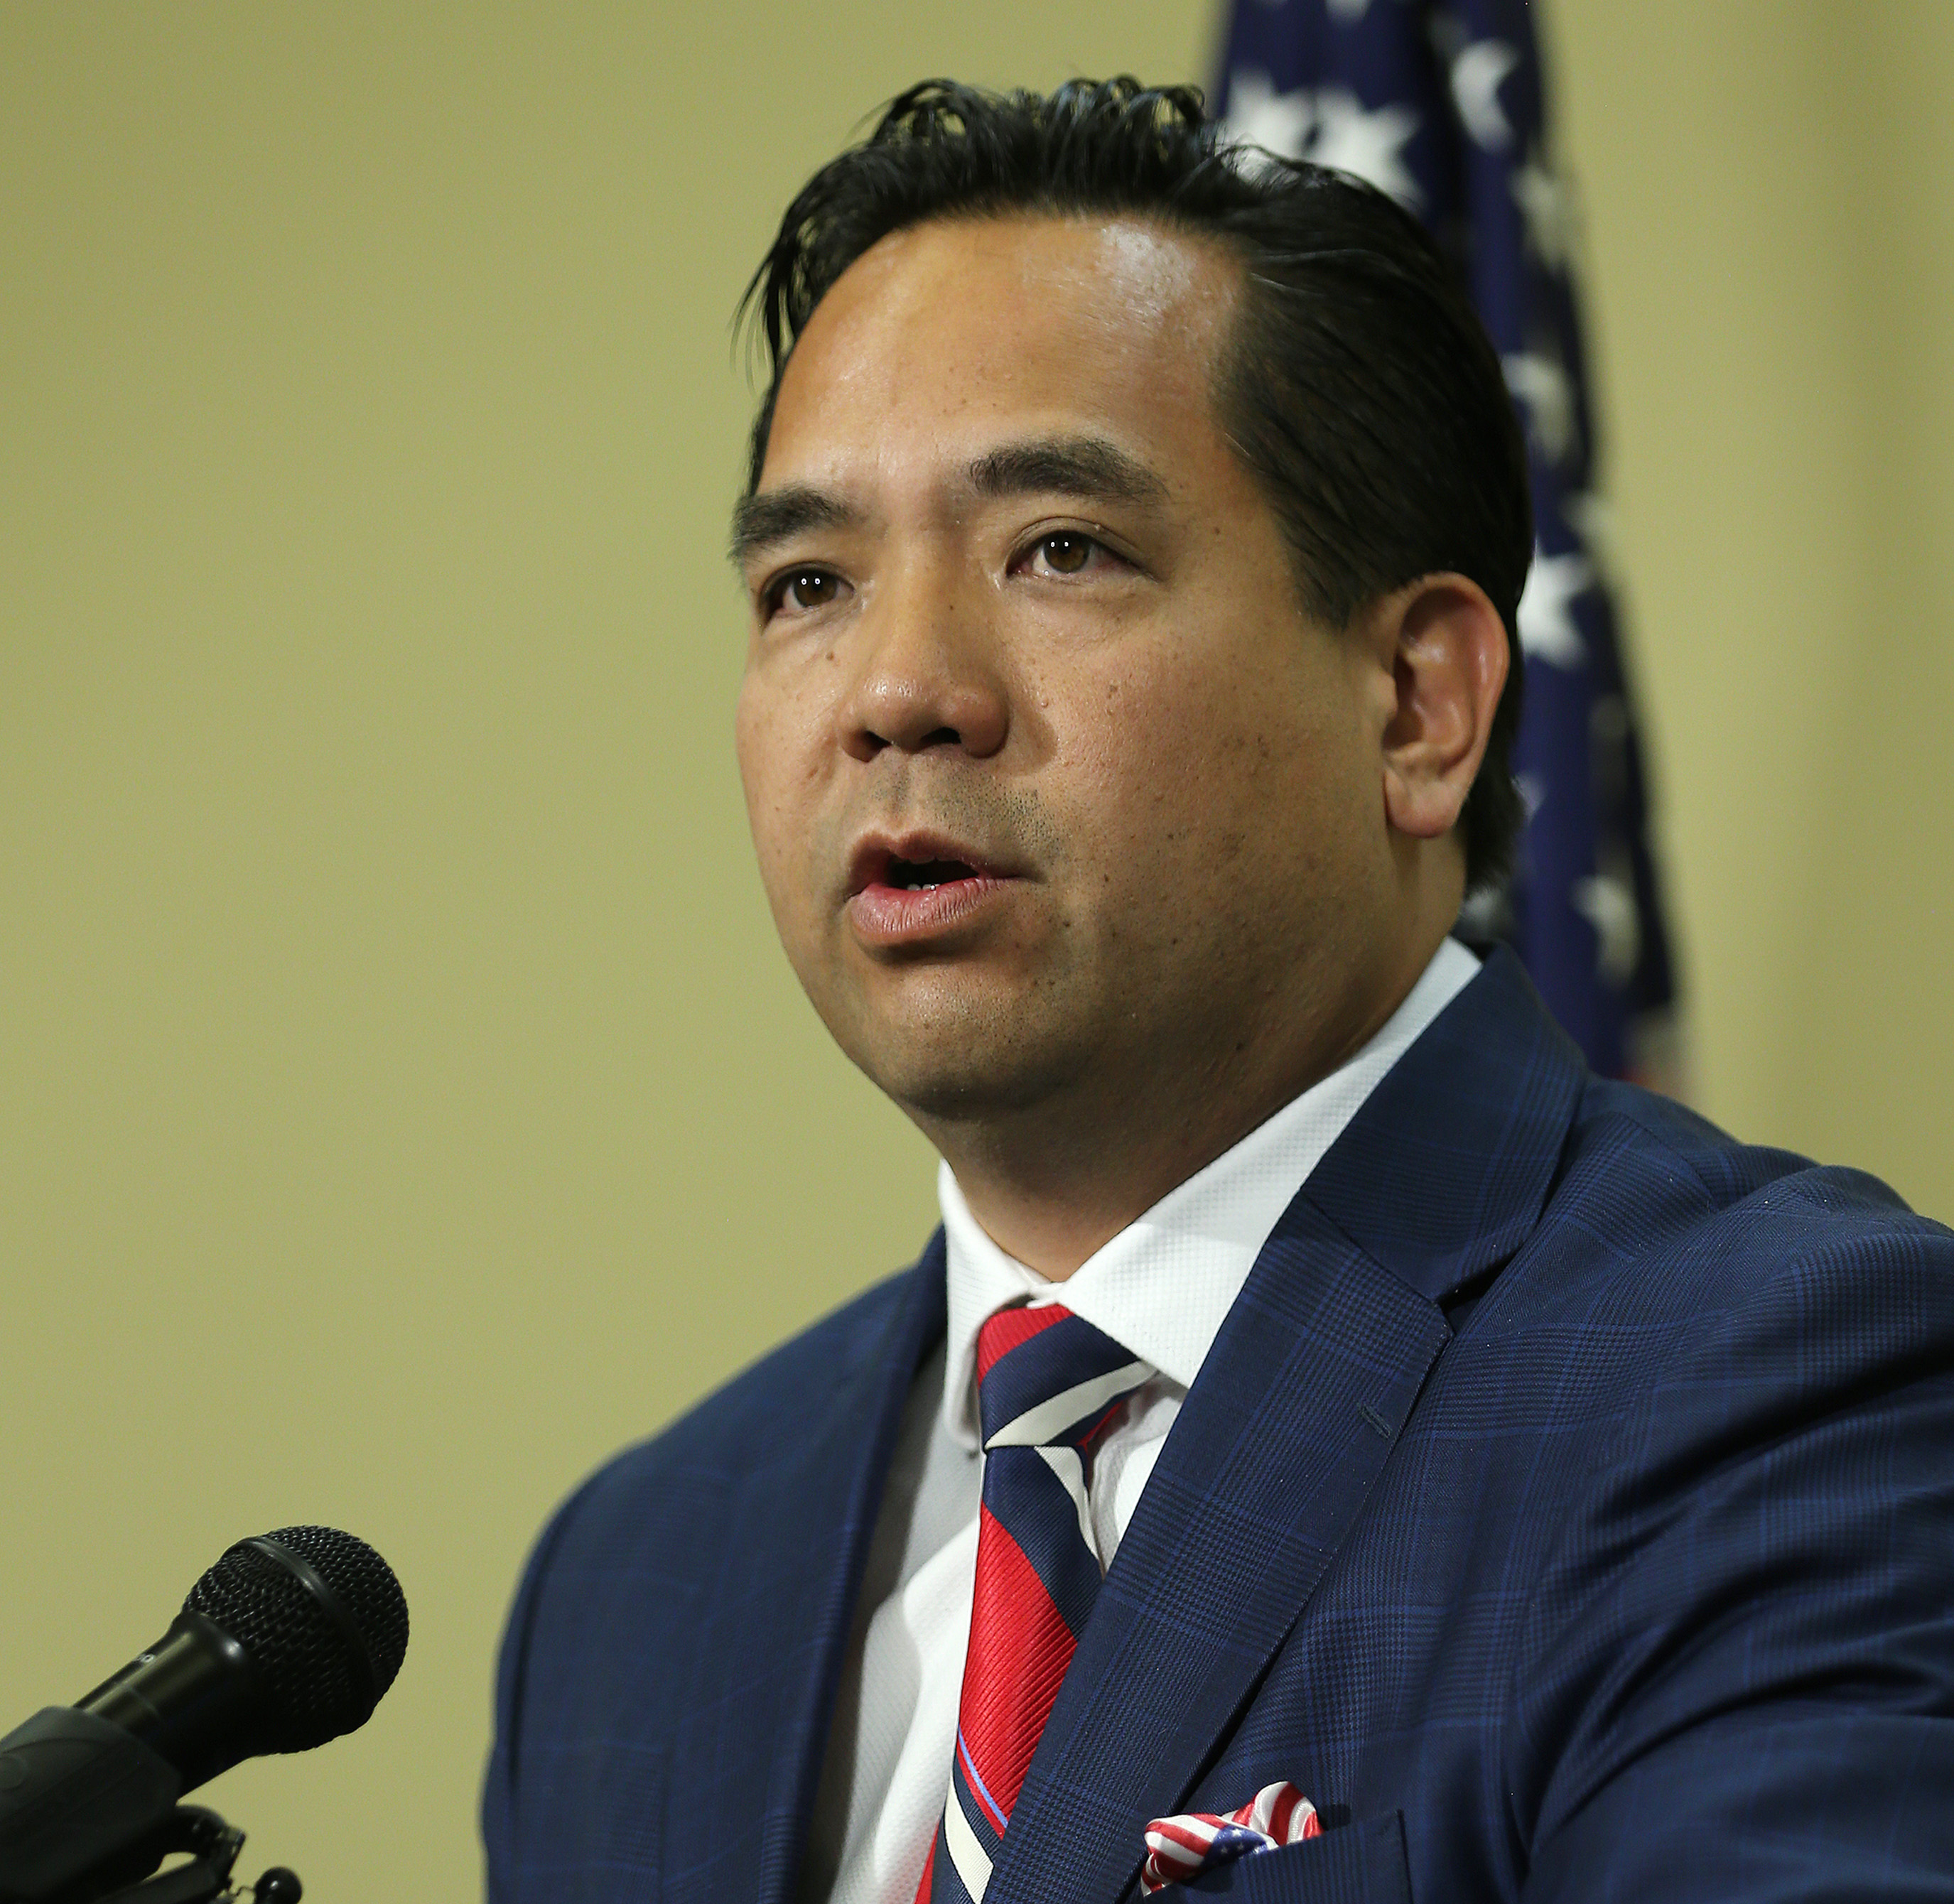 Utah Attorney General Sean Reyes reports the results of an joint effort to fight the drug epidemic during a press conference at the Capitol in Salt Lake City on Friday, June 30, 2017.